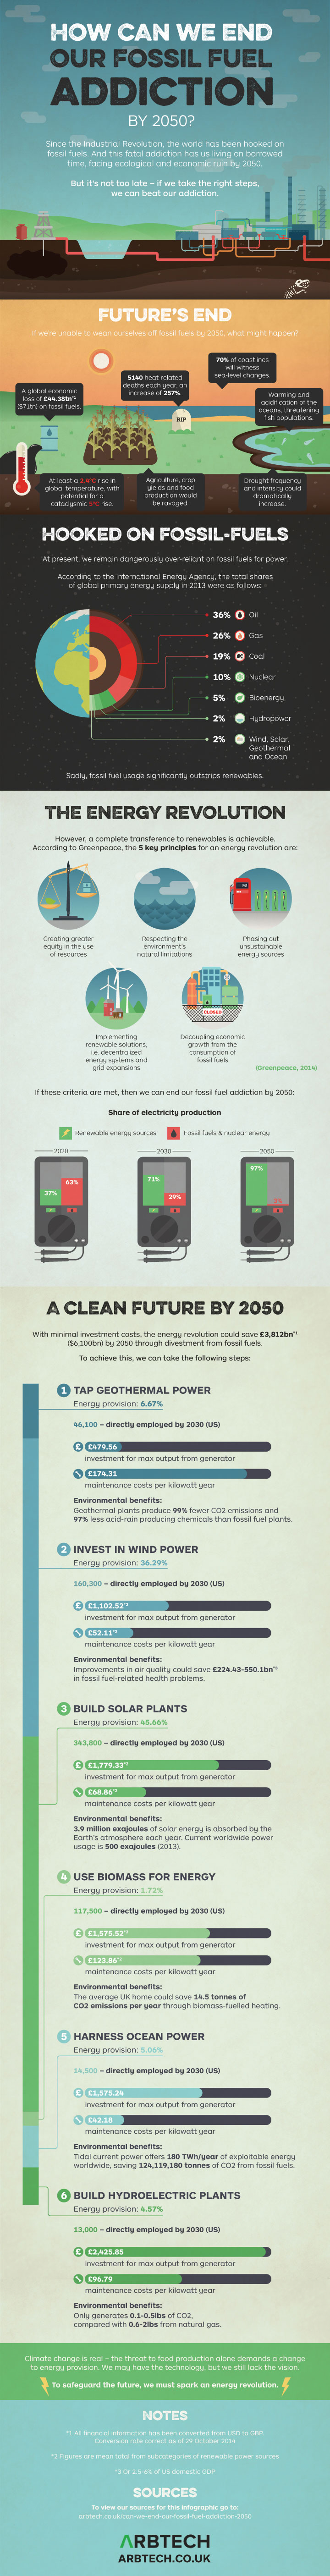 How Can We End Our Fossil Fuel Addiction by 2050? An environmental infographic from Arbtech.